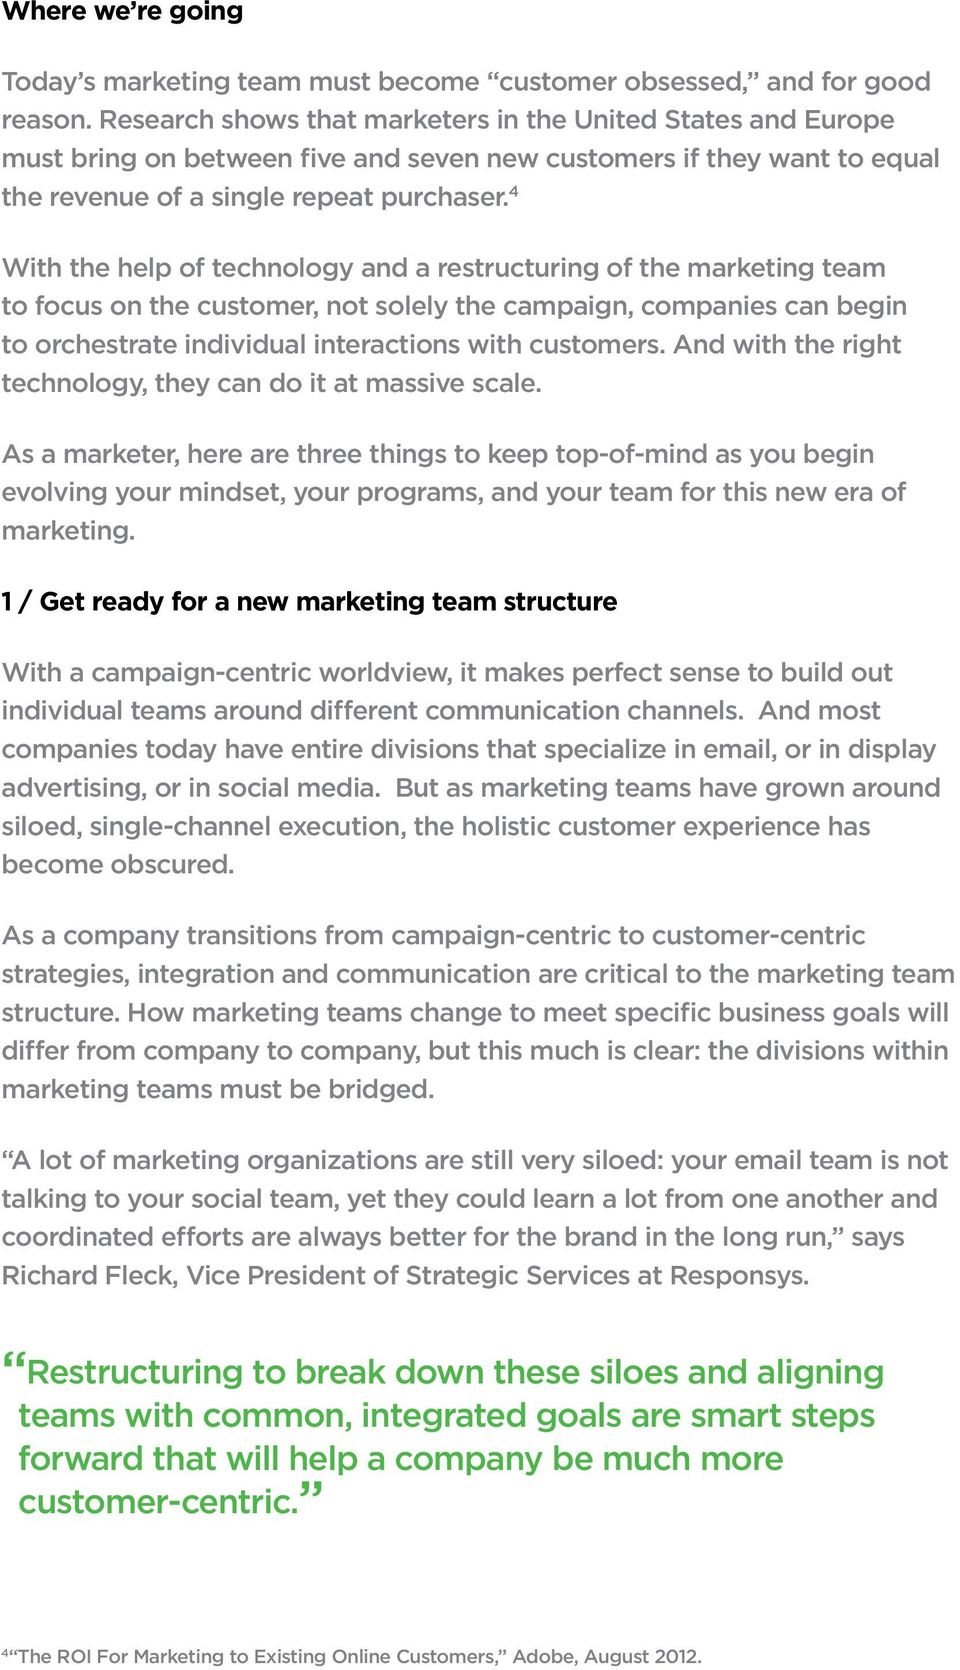 4 With the help of technology and a restructuring of the marketing team to focus on the customer, not solely the campaign, companies can begin to orchestrate individual interactions with customers.